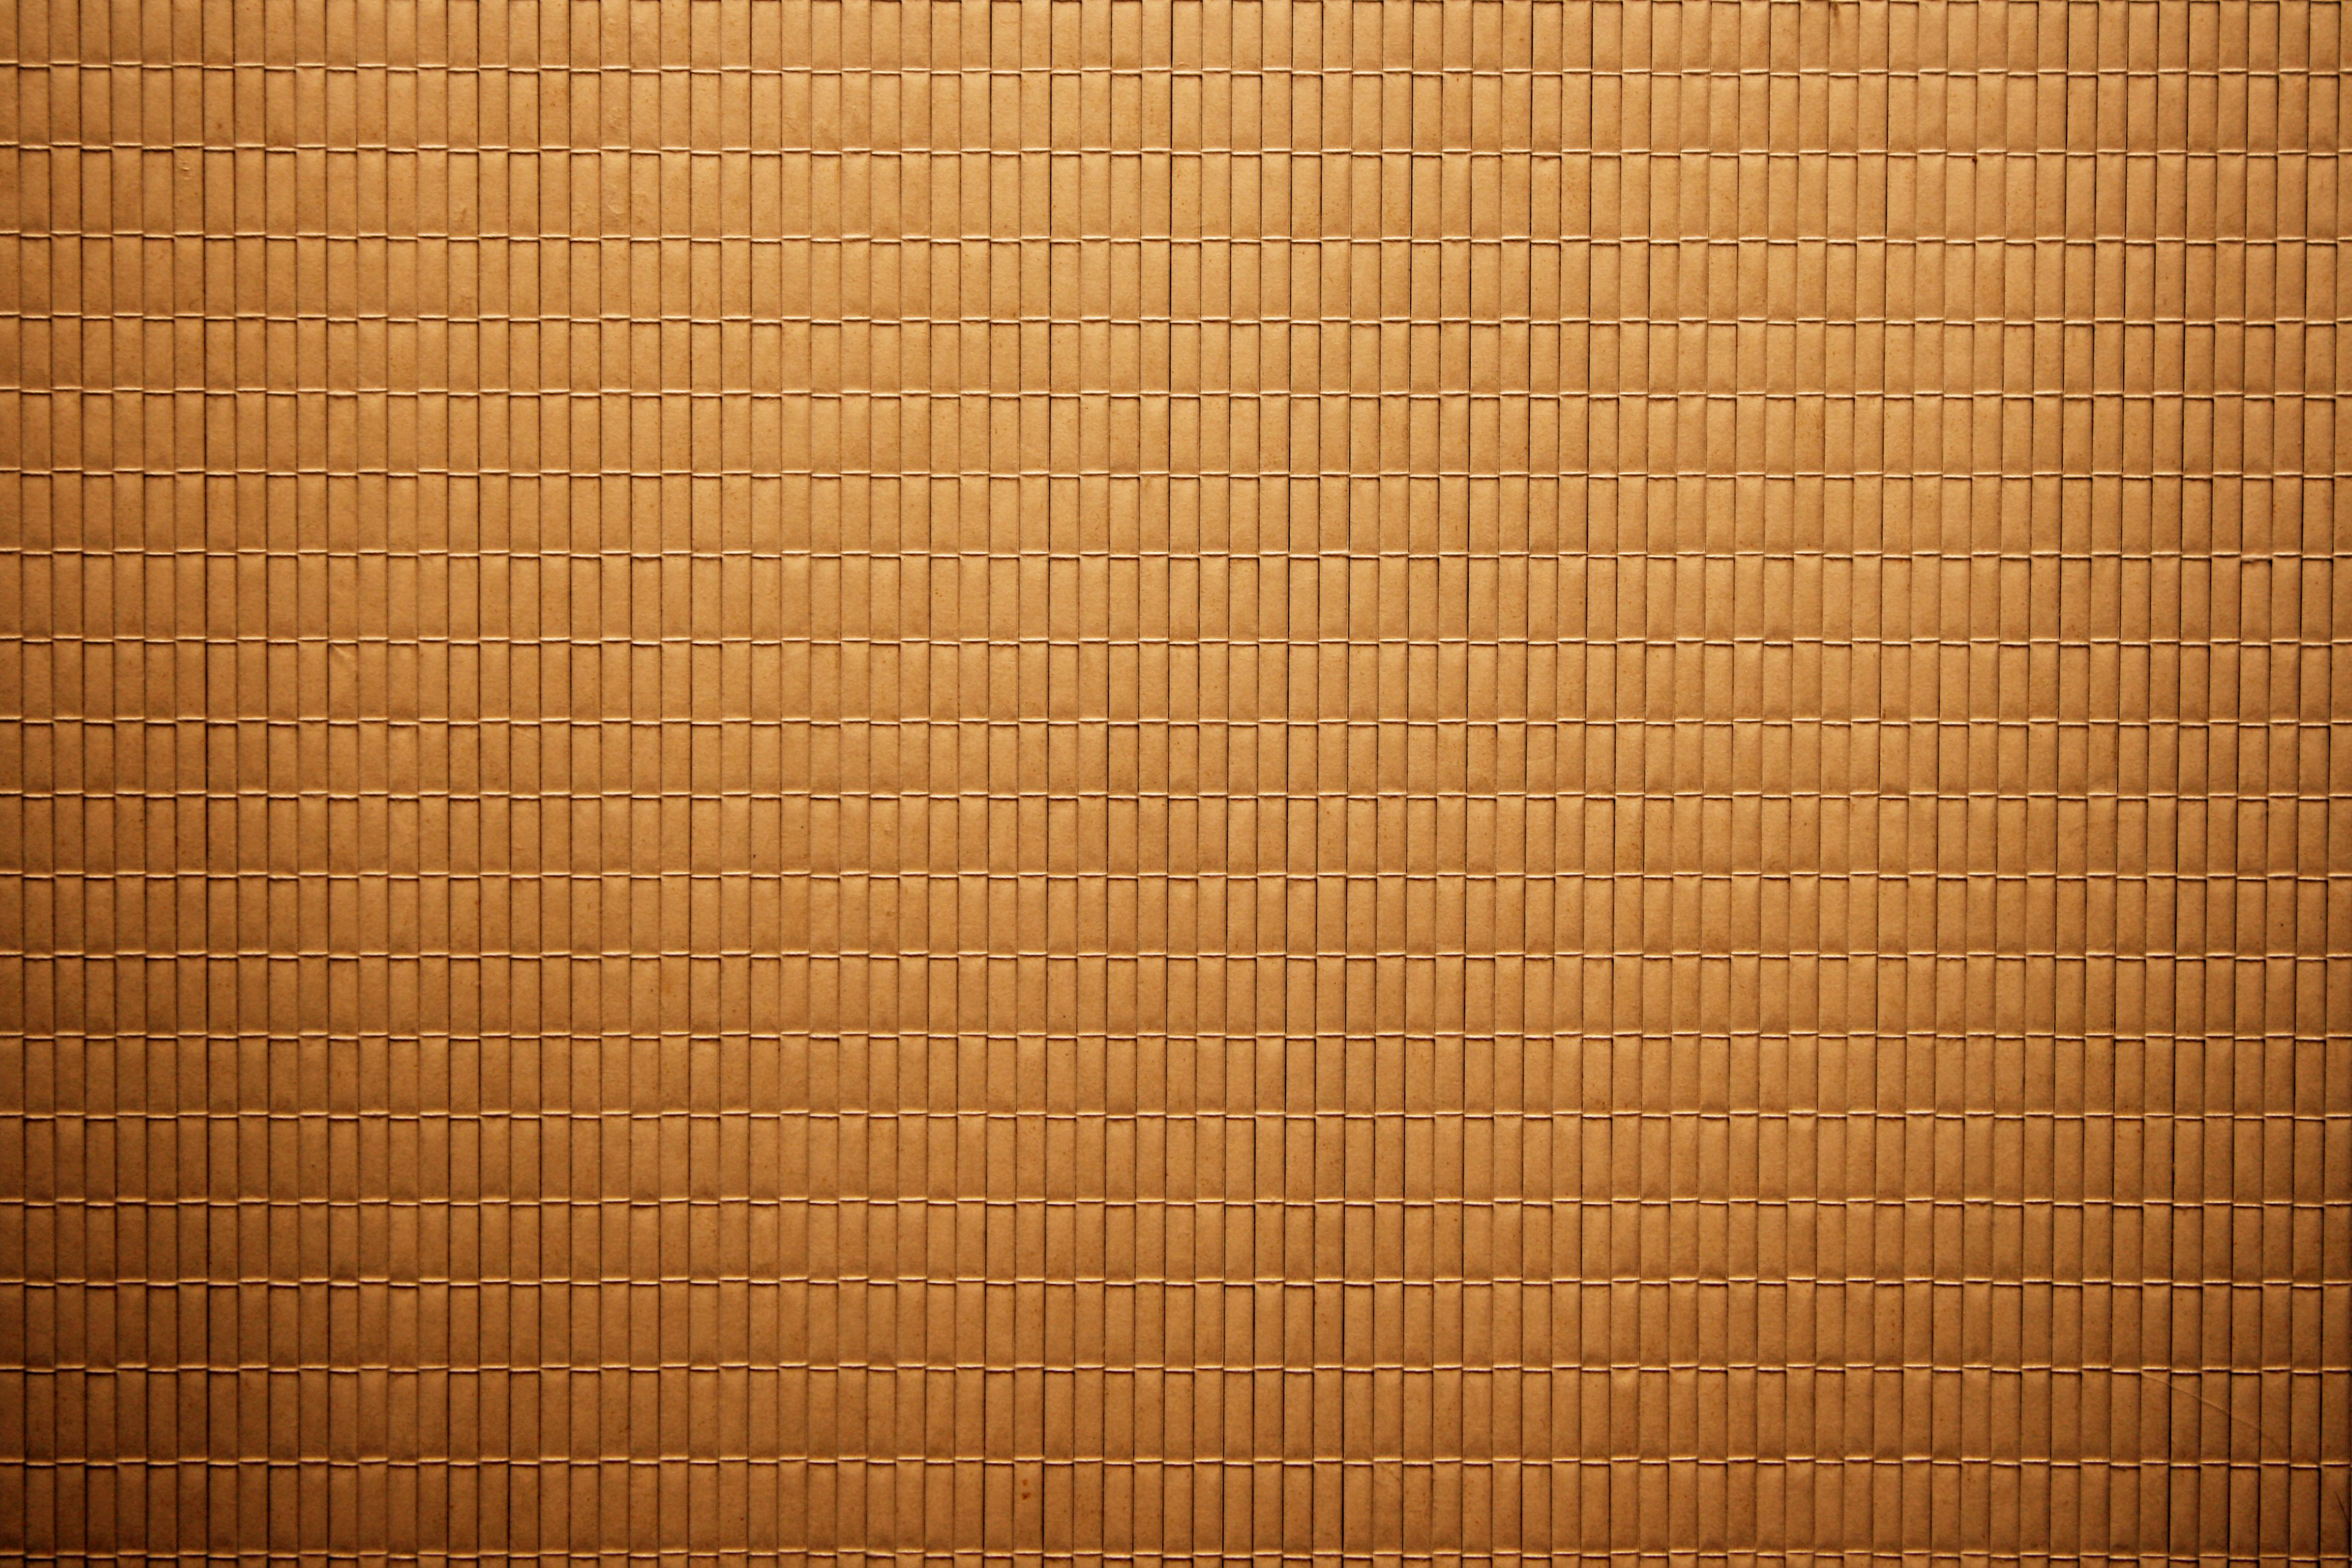 Brown Bamboo Mat Texture Picture Free Photograph